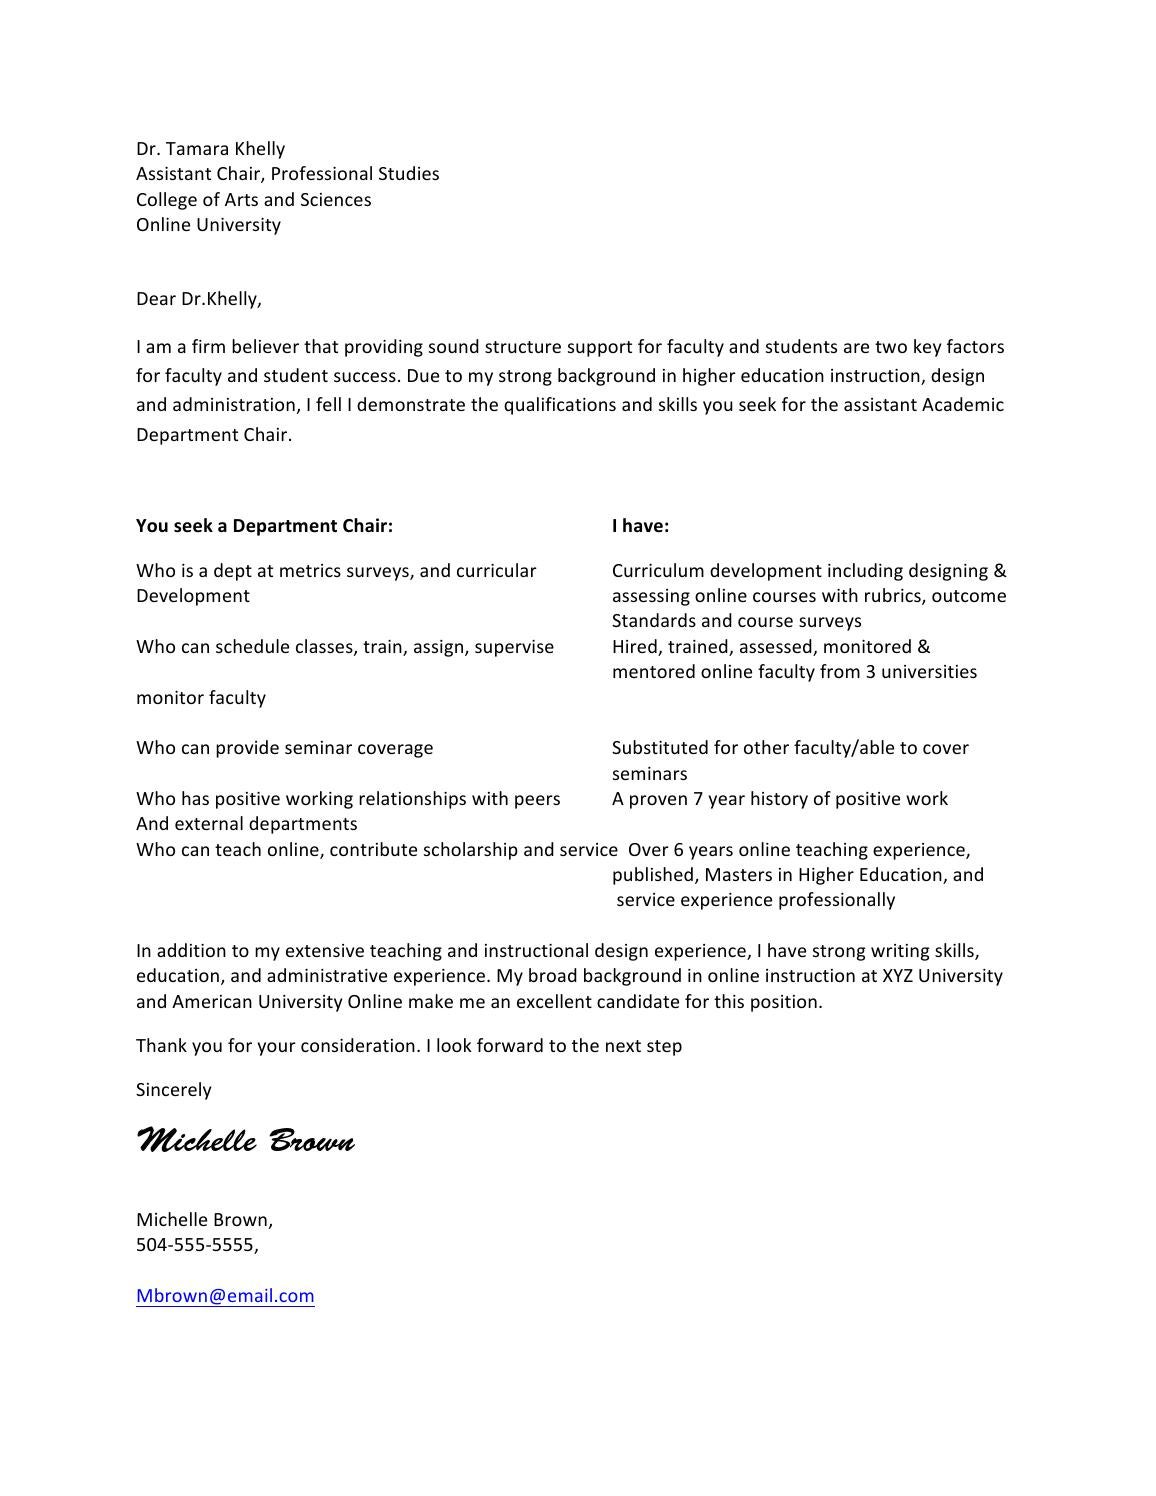 Cover letter 2 by Lamar University Dept. of Career and ...